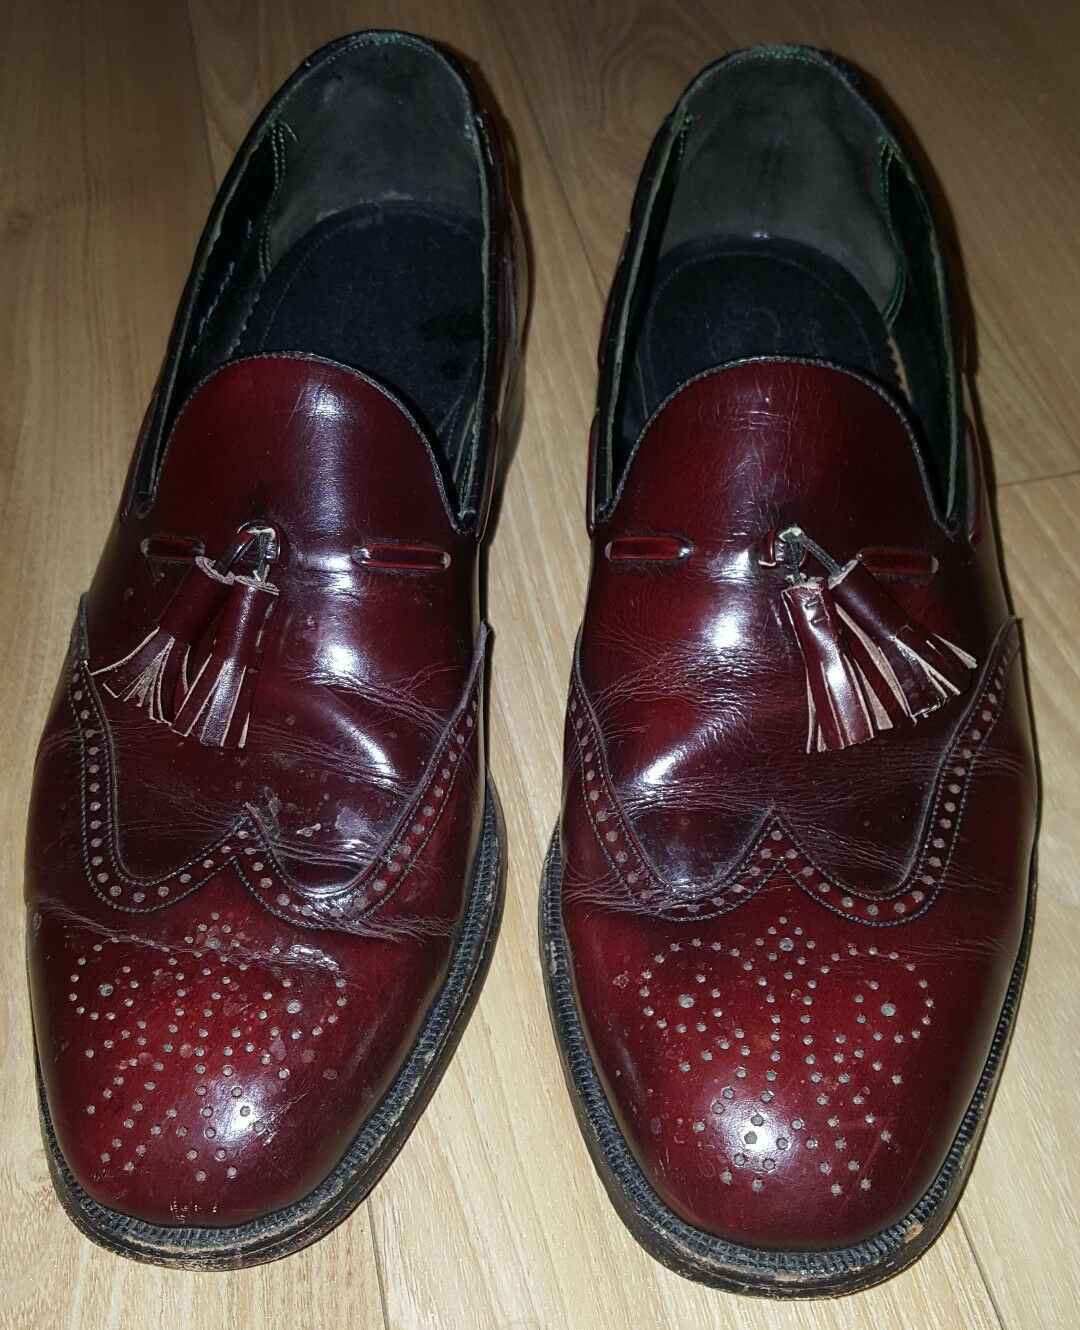 Vtg FLORSHEIM MENS TASSLE DRESS LOAFERS SZ 10 1 2 D BURGUNDY